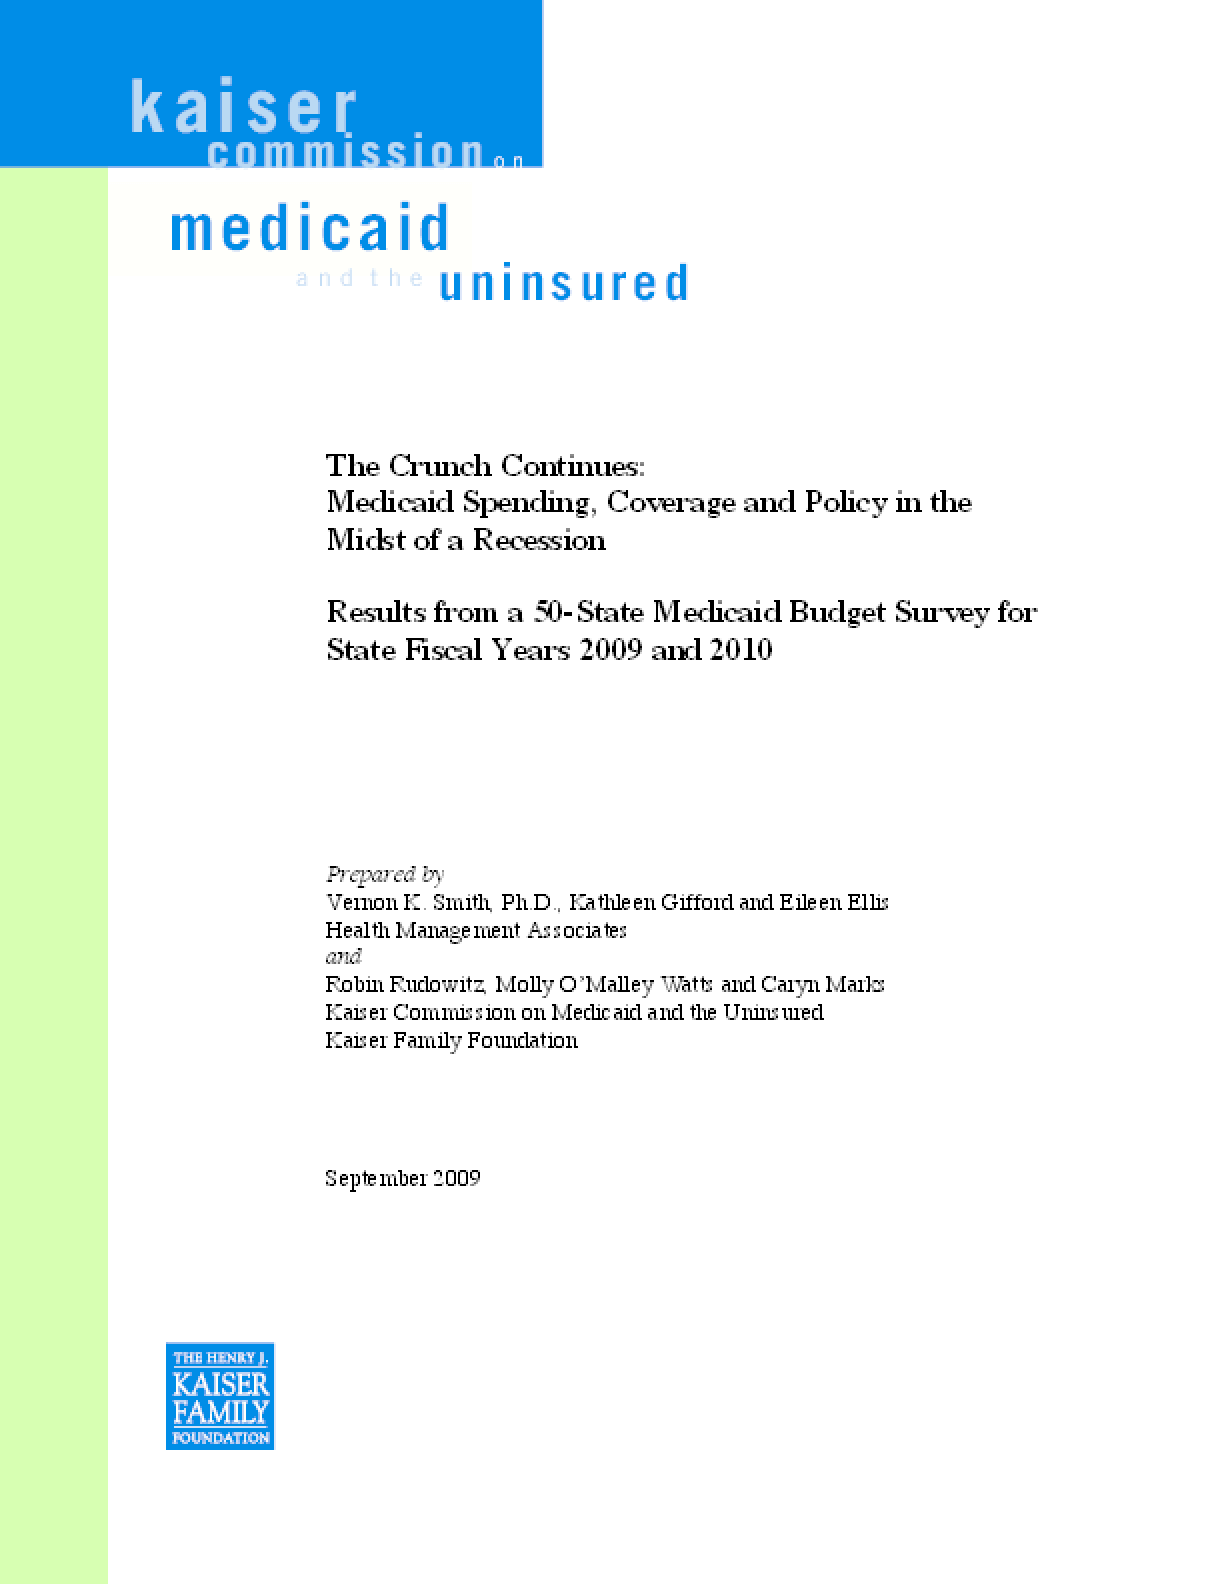 The Crunch Continues: Medicaid Spending, Coverage and Policy in the Midst of a Recession